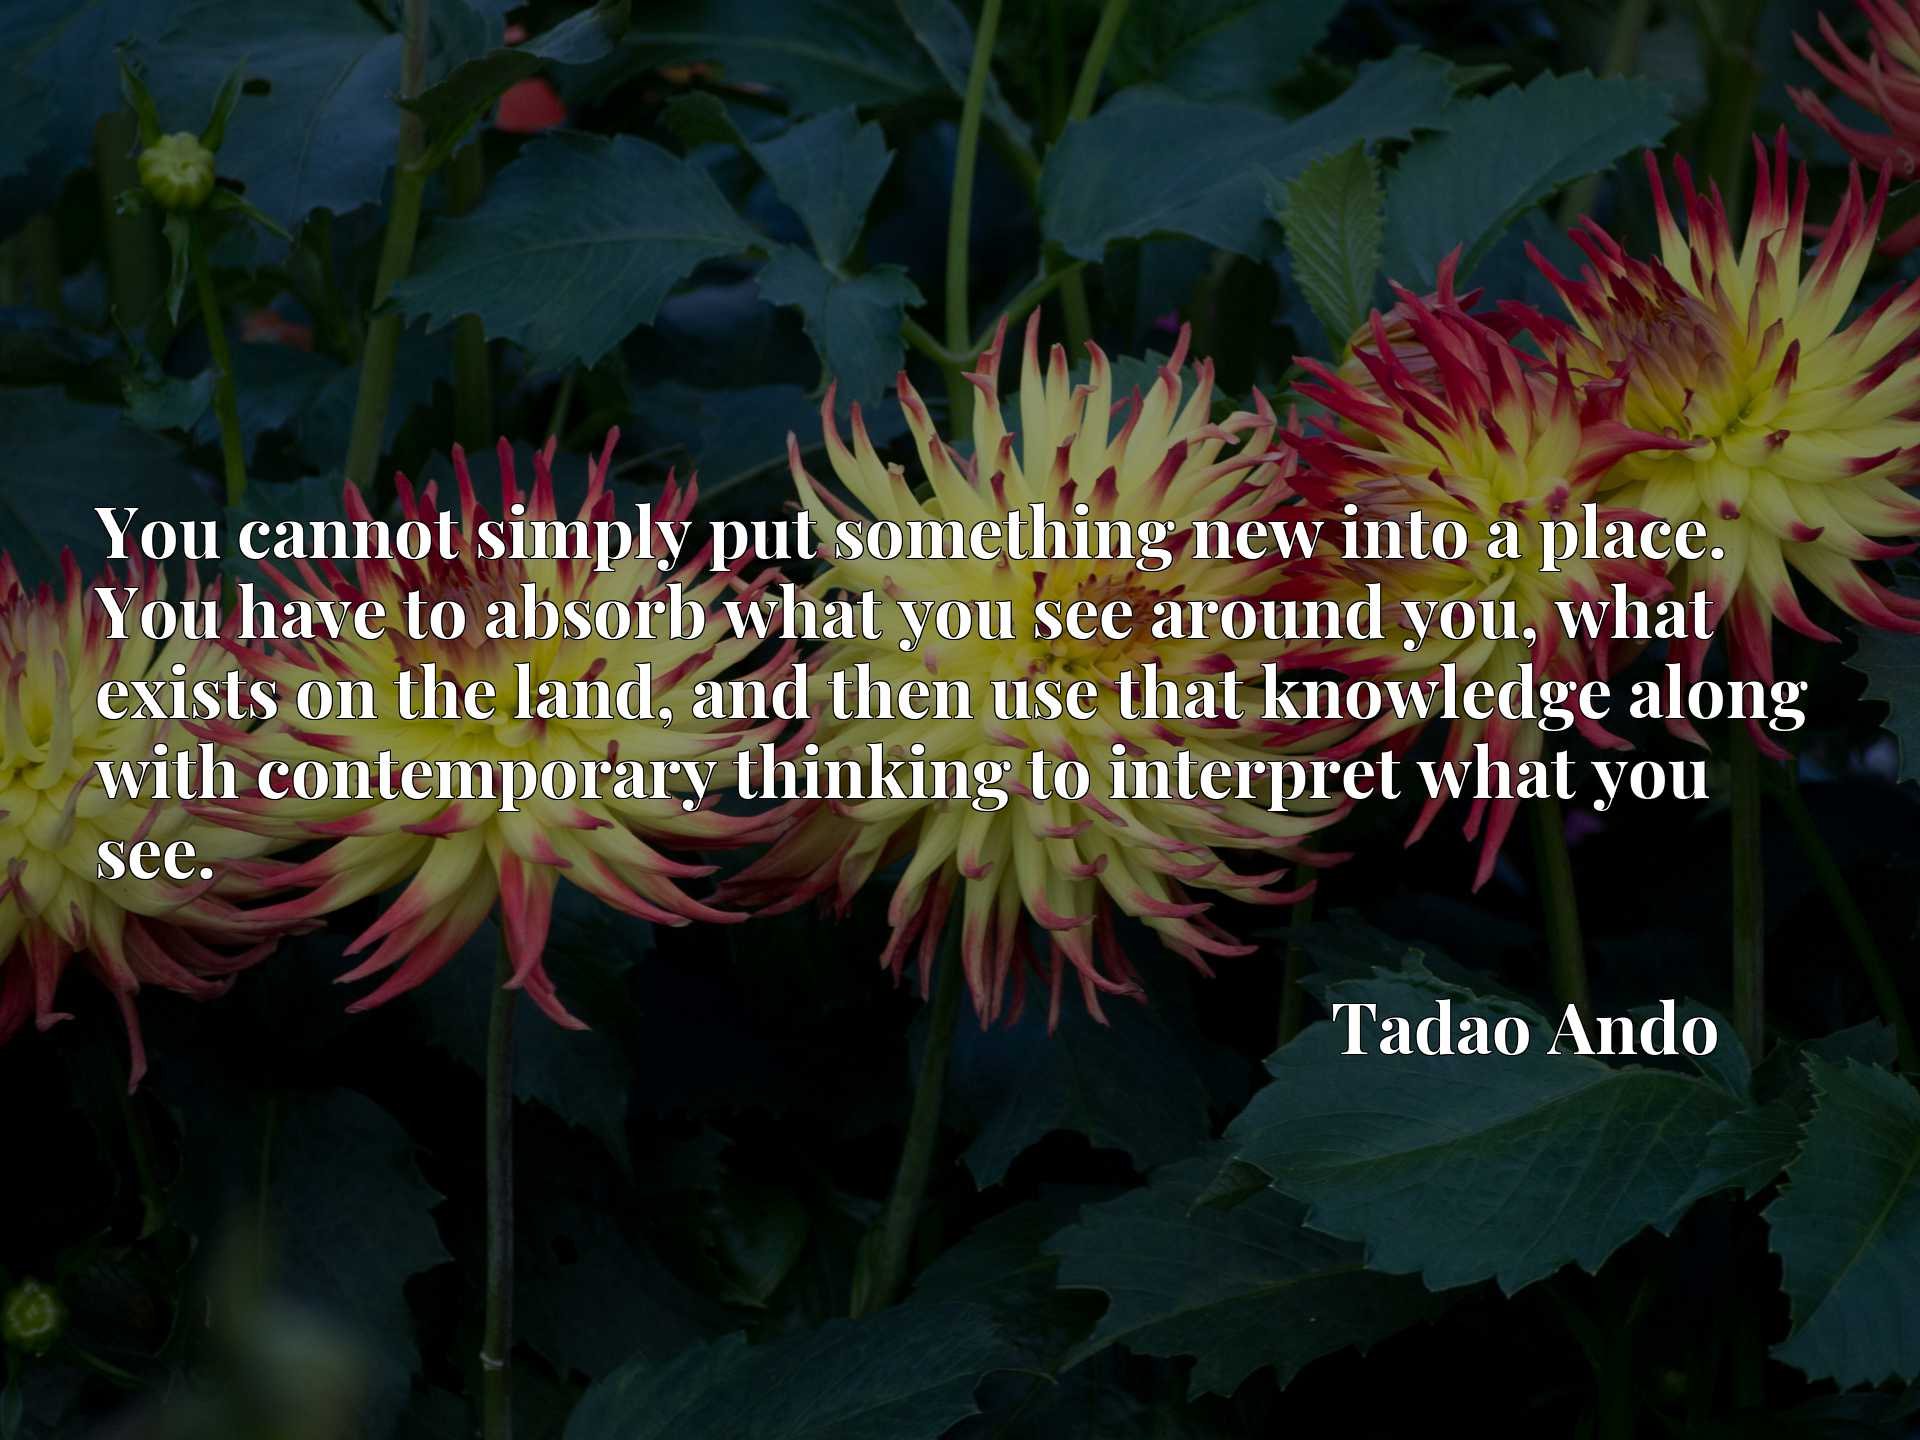 Quote Picture :You cannot simply put something new into a place. You have to absorb what you see around you, what exists on the land, and then use that knowledge along with contemporary thinking to interpret what you see.